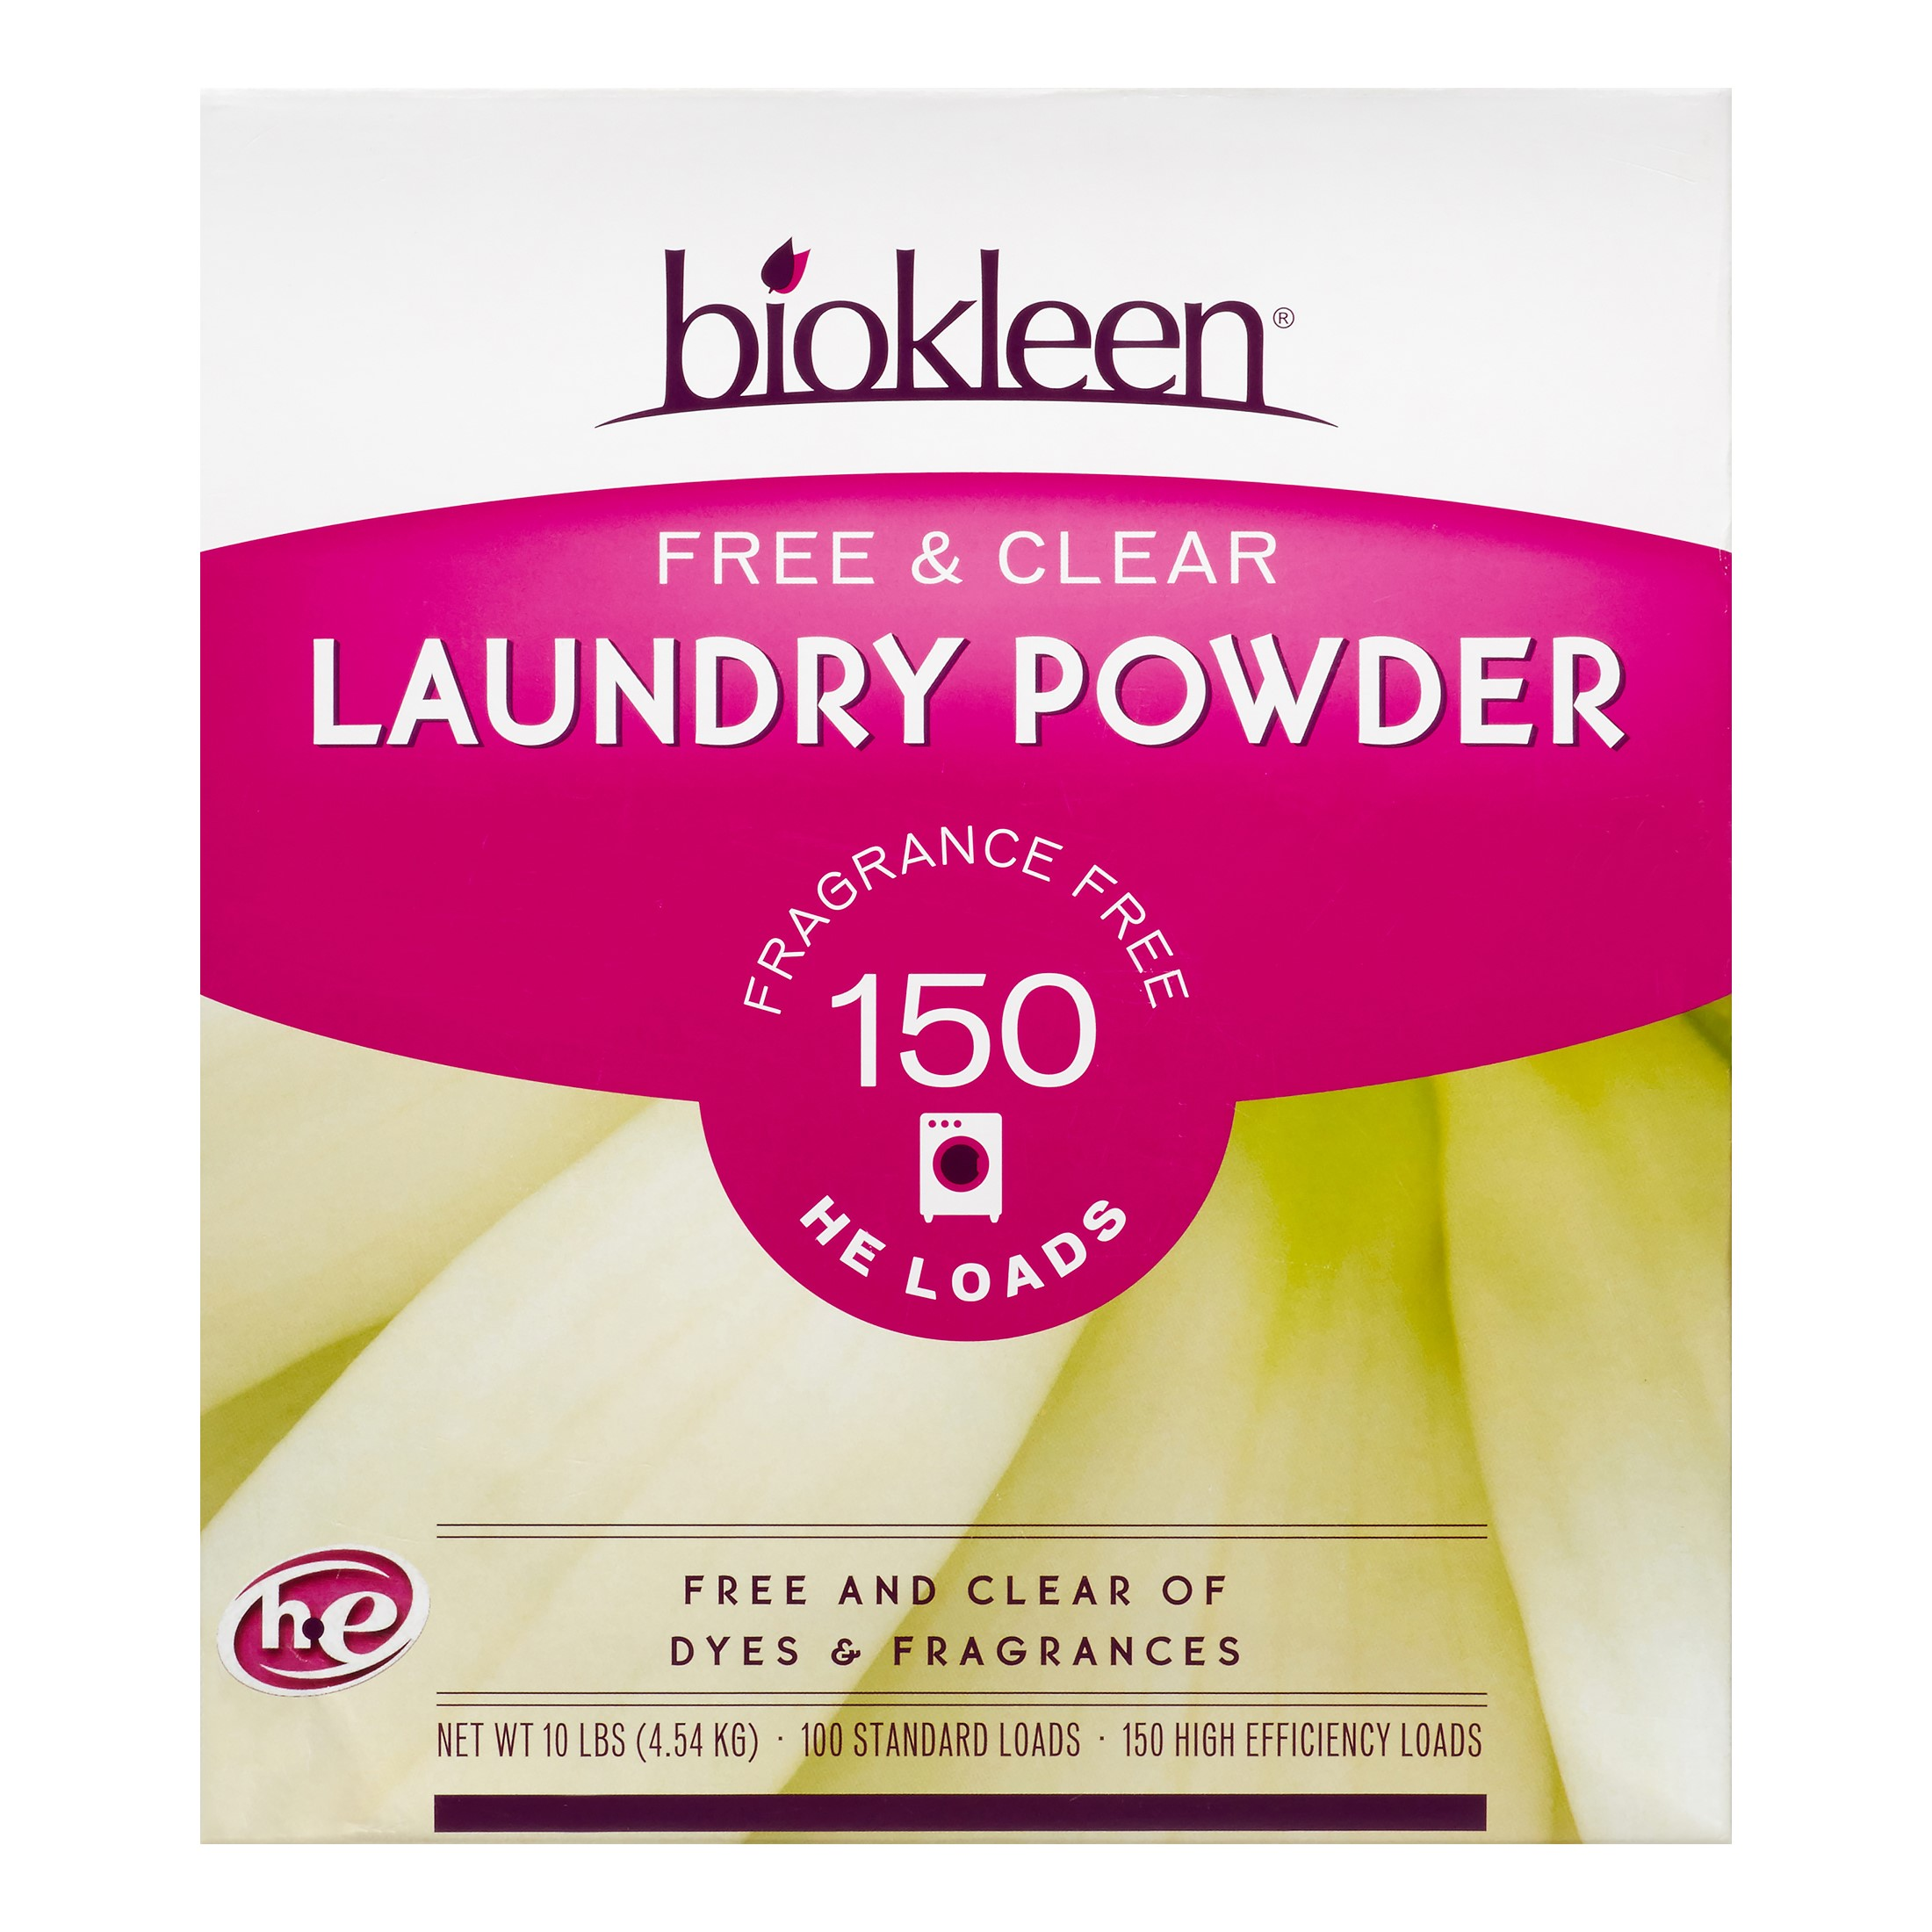 Biokleen Free & Clear Laundry Detergent, Unscented, 100 Loads